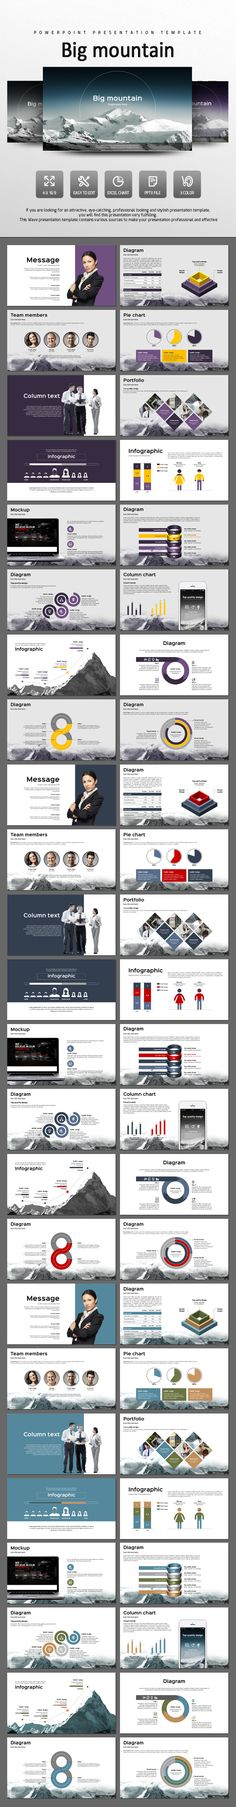 Big Mountain - PowerPoint Presentation Template #design #slides Download: http://graphicriver.net/item/big-mountain/14442476?ref=ksioks